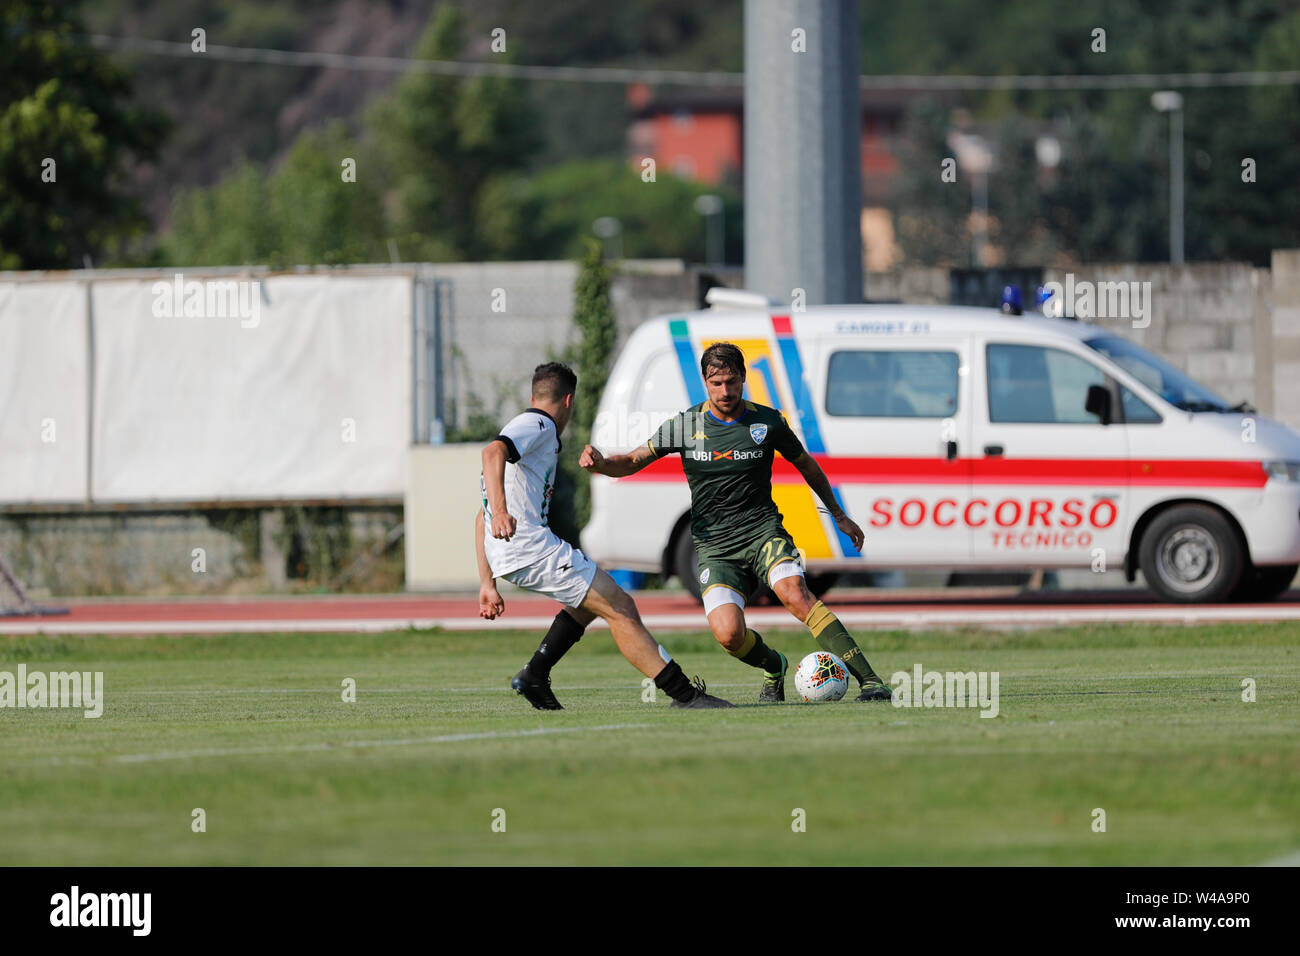 Darfo Boario, Italia. 21st July, 2019. Foto Stefano Nicoli/LaPresse21 luglio 2019 Darfo Boario (Bs), Italia sport calcio Amichevole Brescia Darfo Pre Campionato di calcio Serie A 2019/2020 - Nella foto: Daniele Dessena Photo Stefano Nicoli/LaPresse July 20, 2019 Darfo Boario (Bs), Italy sport soccer Friendly match Brescia Darfo League A TIM 2019/2020 - In the pic: Daniele Dessena Credit: LaPresse/Alamy Live News - Stock Image